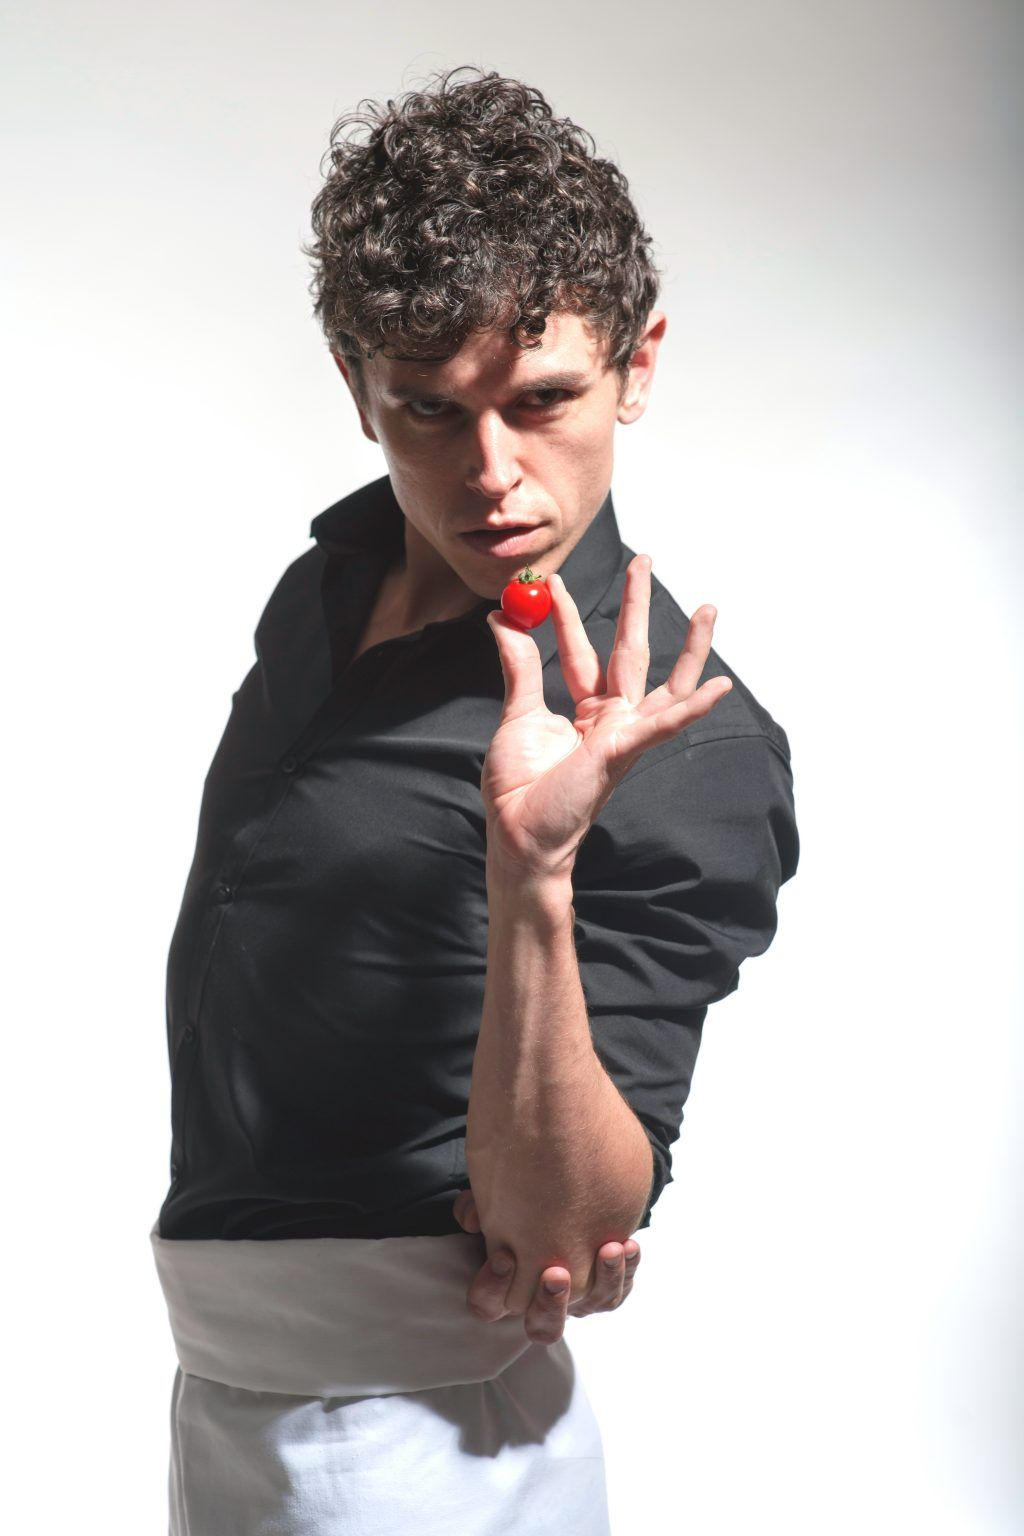 Portrait Photo of a Waiter holding one cherry tomato between finger and thumb